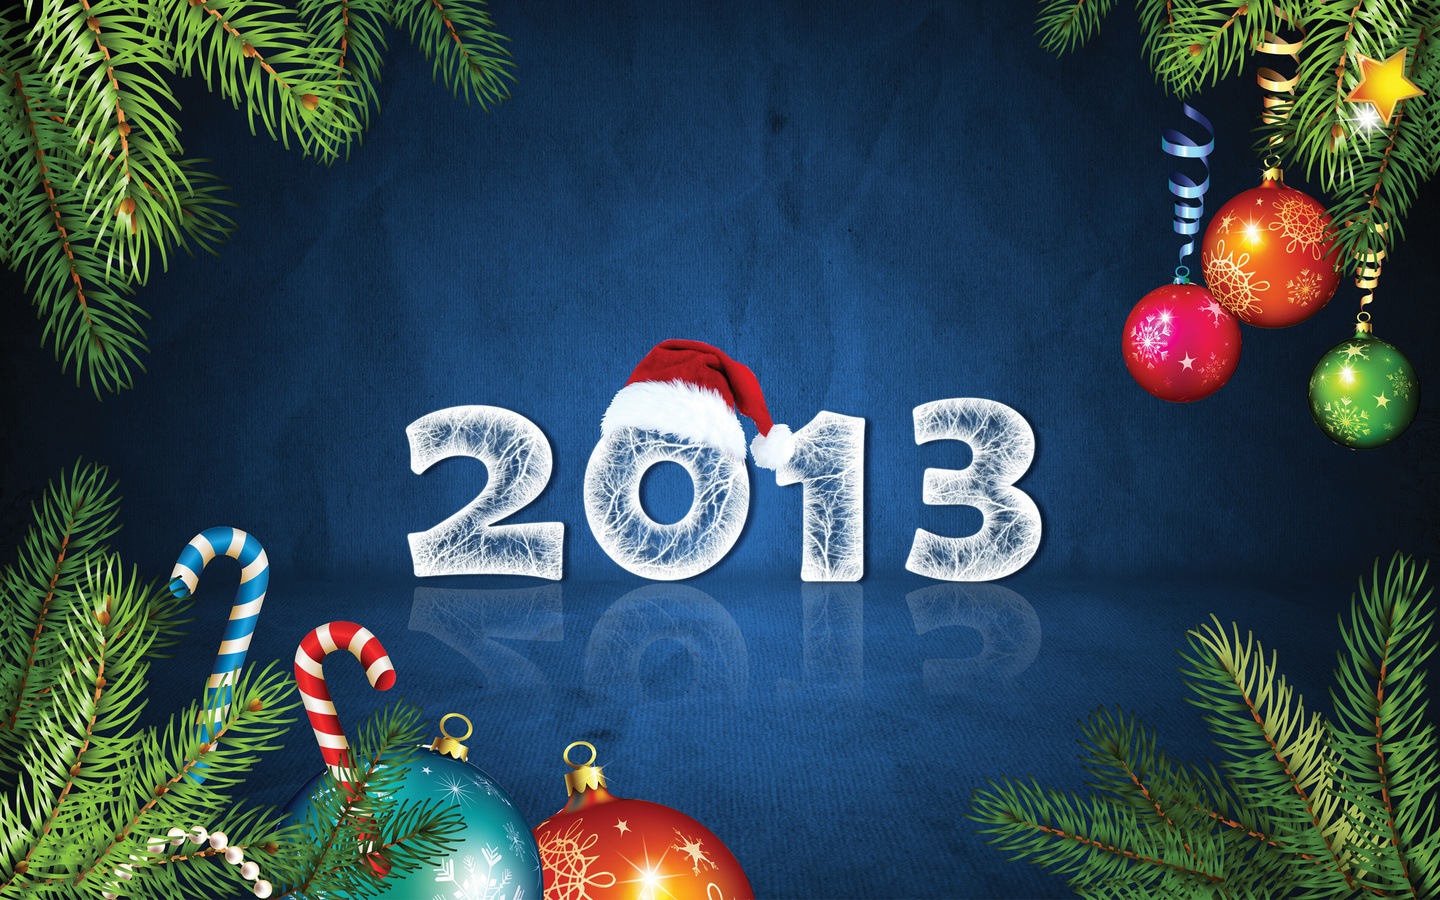 New Year 2013 Latest 3D Wallpapers Collection | New Year 2013 Wallpapers for Windows 8 | New Year 2013 Wallpapers for Windows 7 | New Year 2013 Wallpapers for Windows XP | New Year 2013 Wallpapers for Mac | New Year 2013 Wallpapers for iPhone